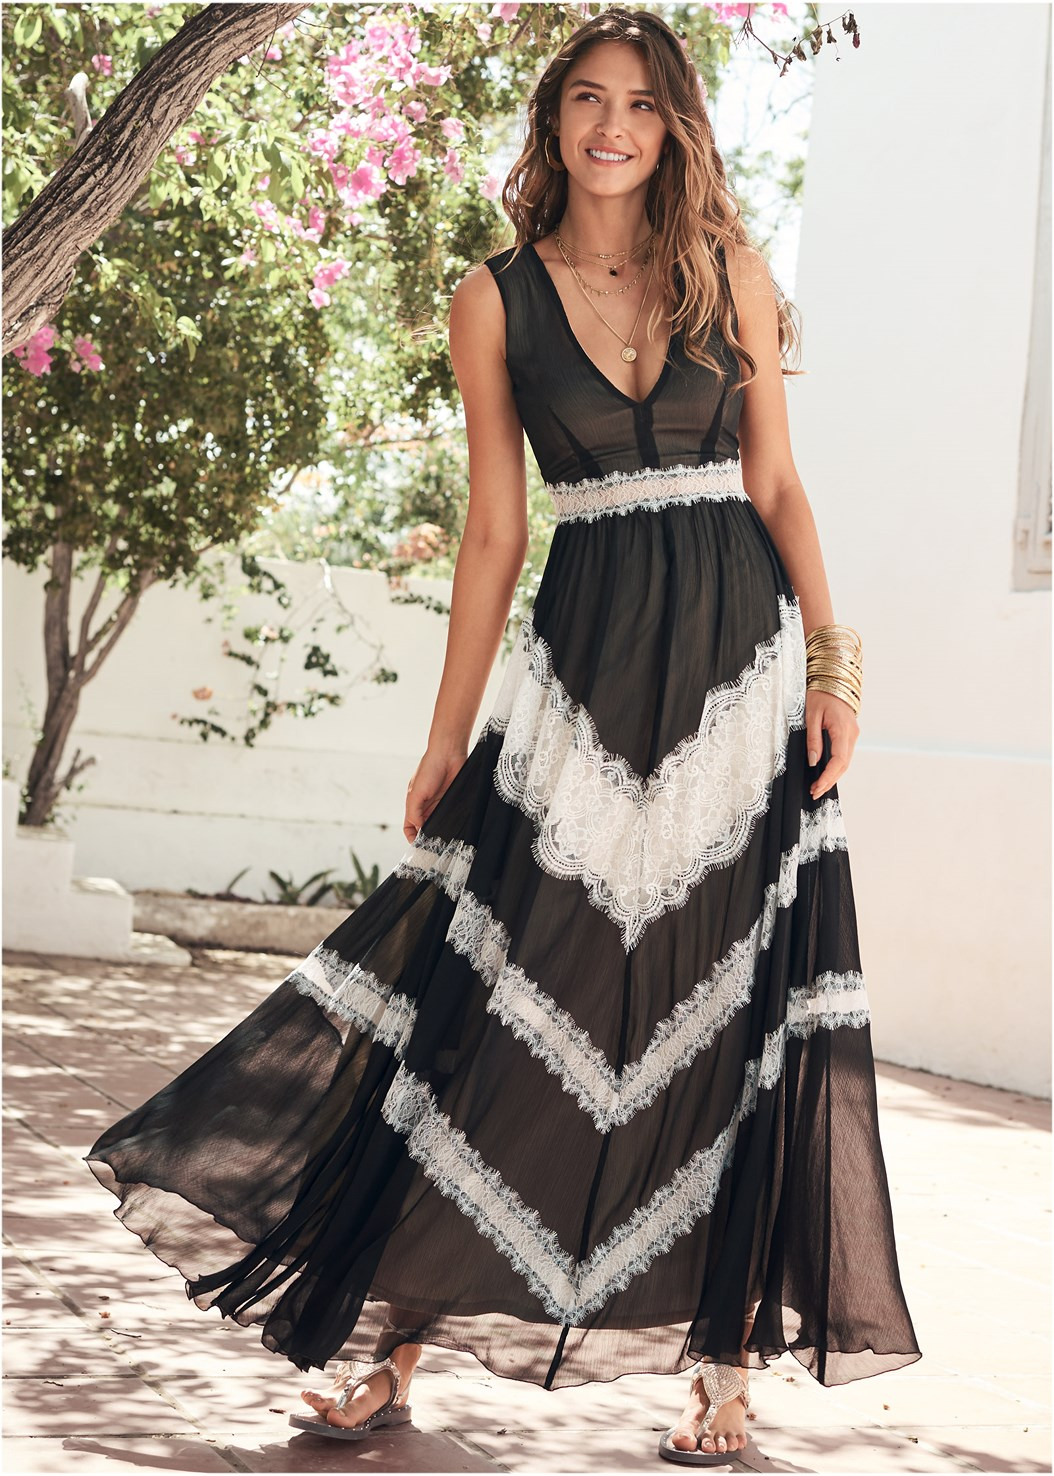 Lace Inset V-Neck Dress,Lace Up Gladiator Sandals,Hammered Metal Earrings,Layered Long Necklace